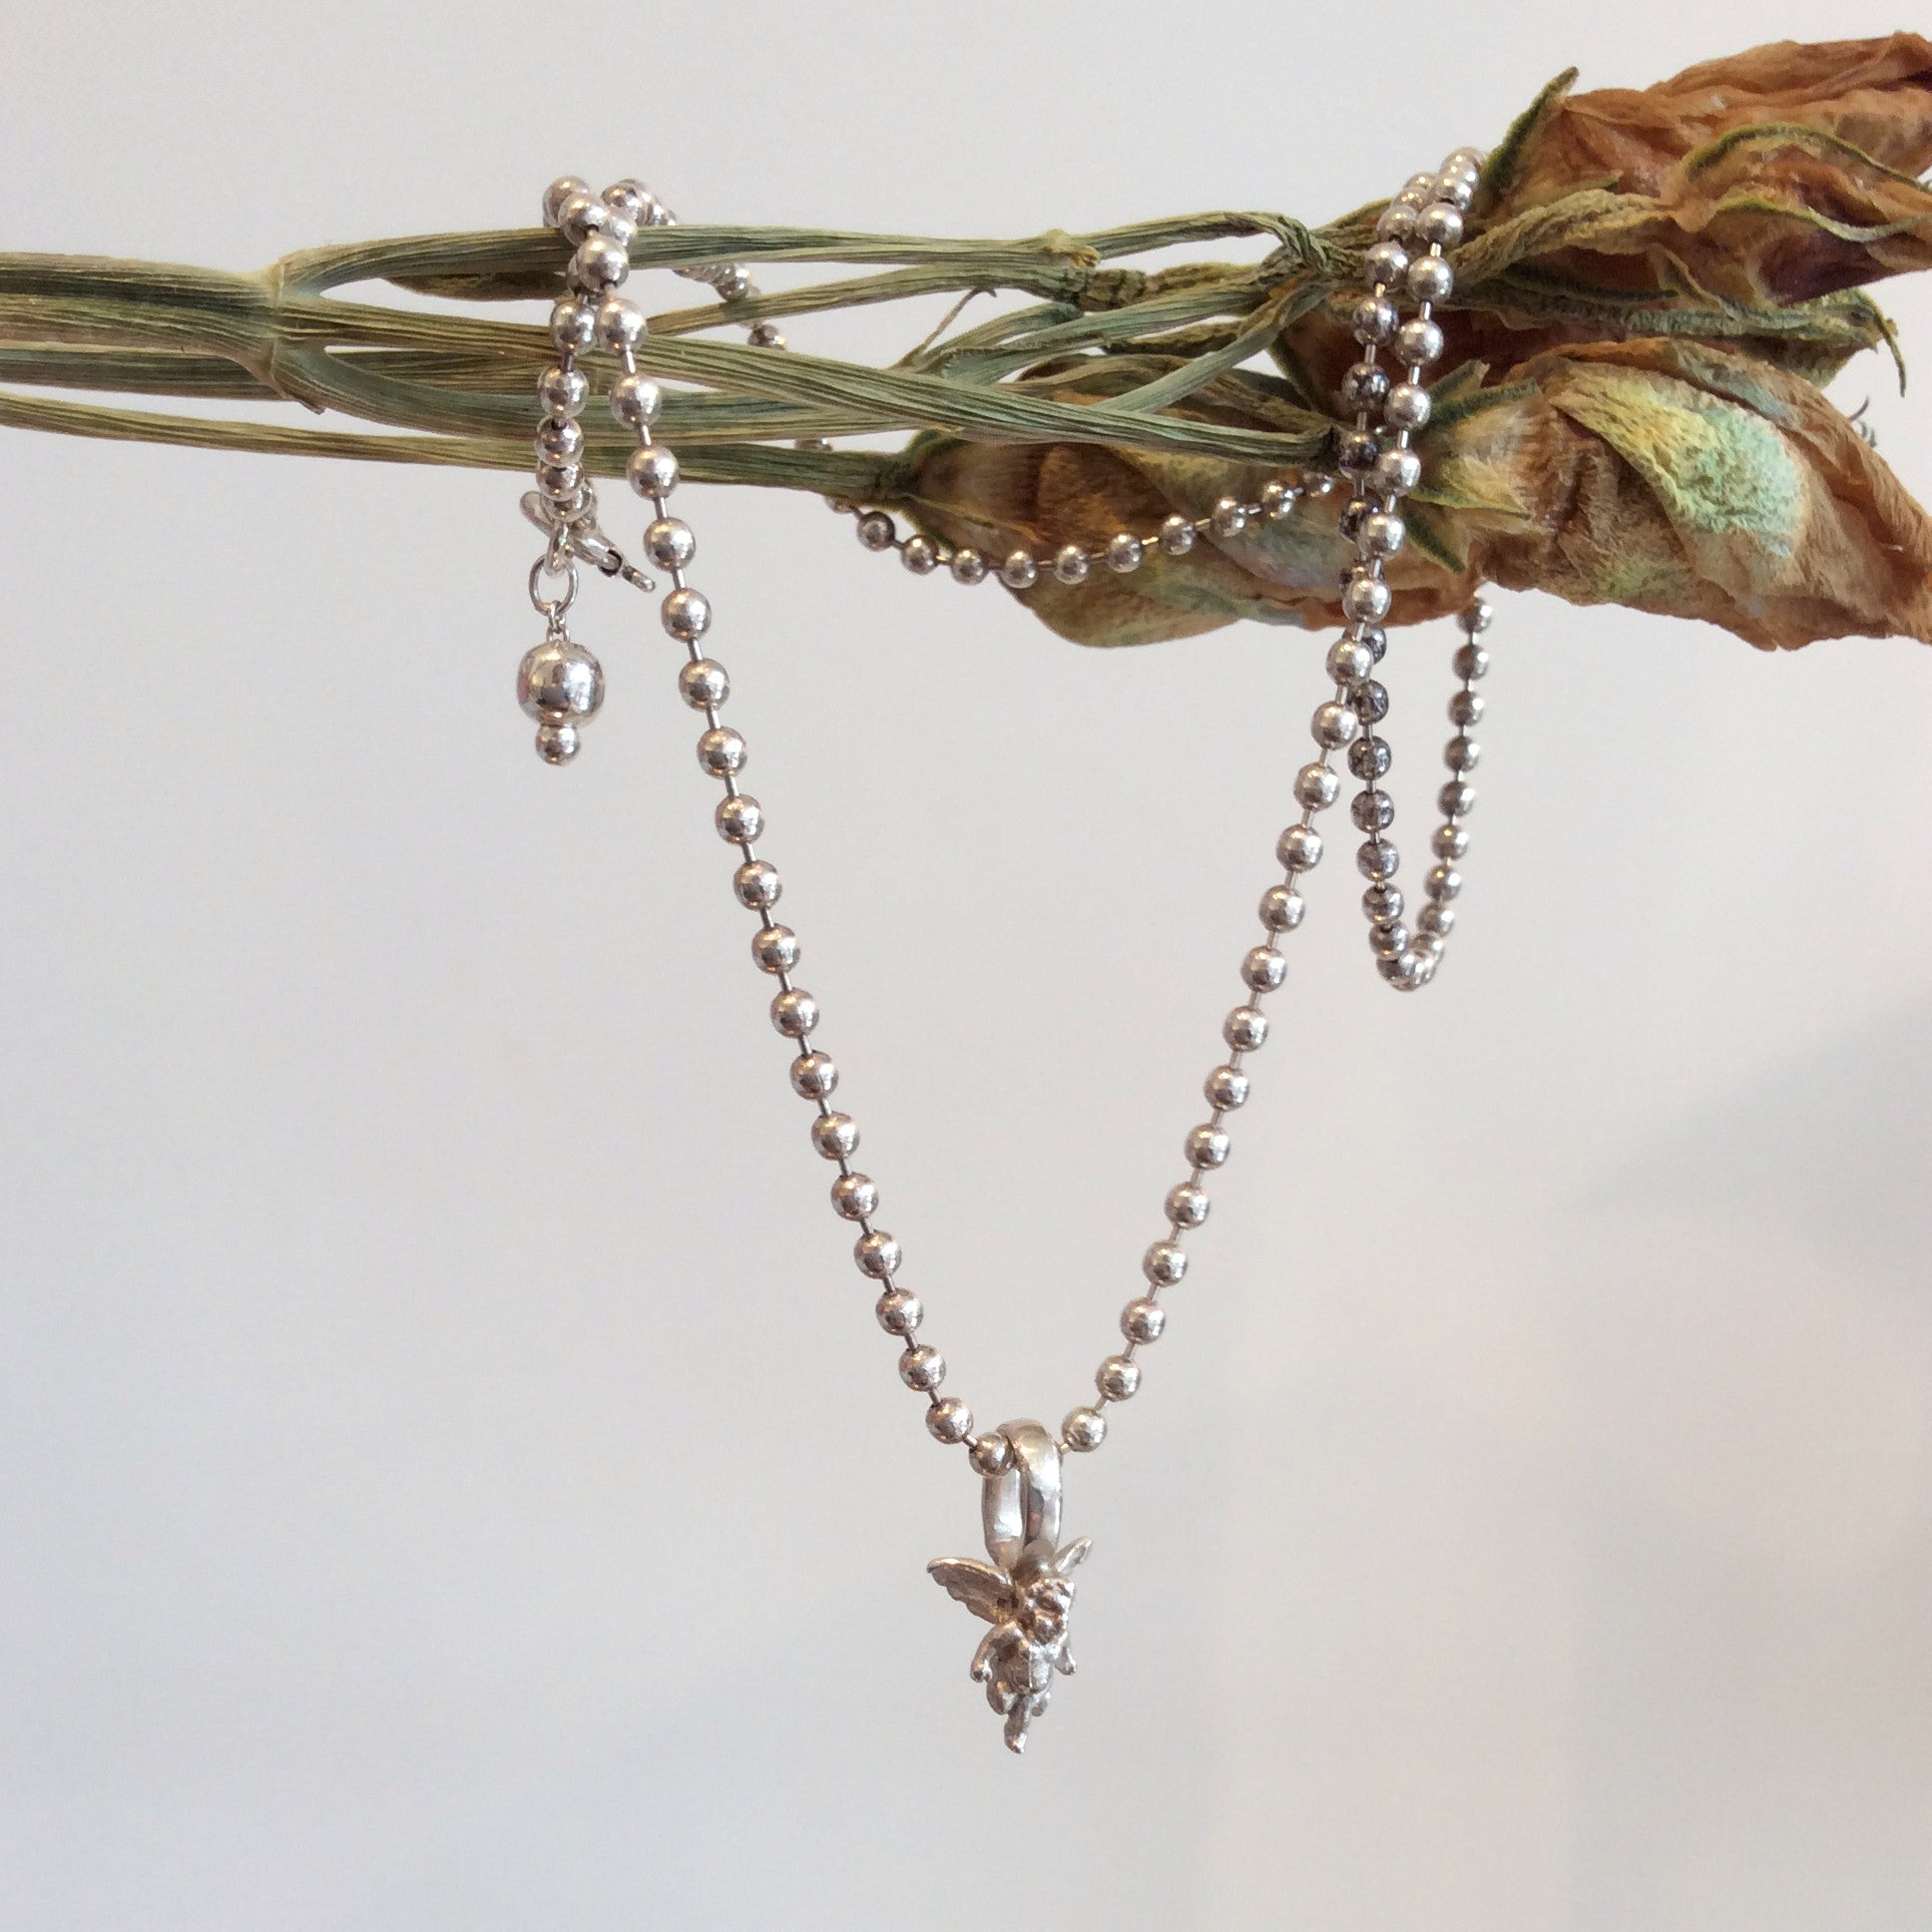 ORNAMENT & CRIME 'ANGEL' NECKLACE W/ BALL CHAIN